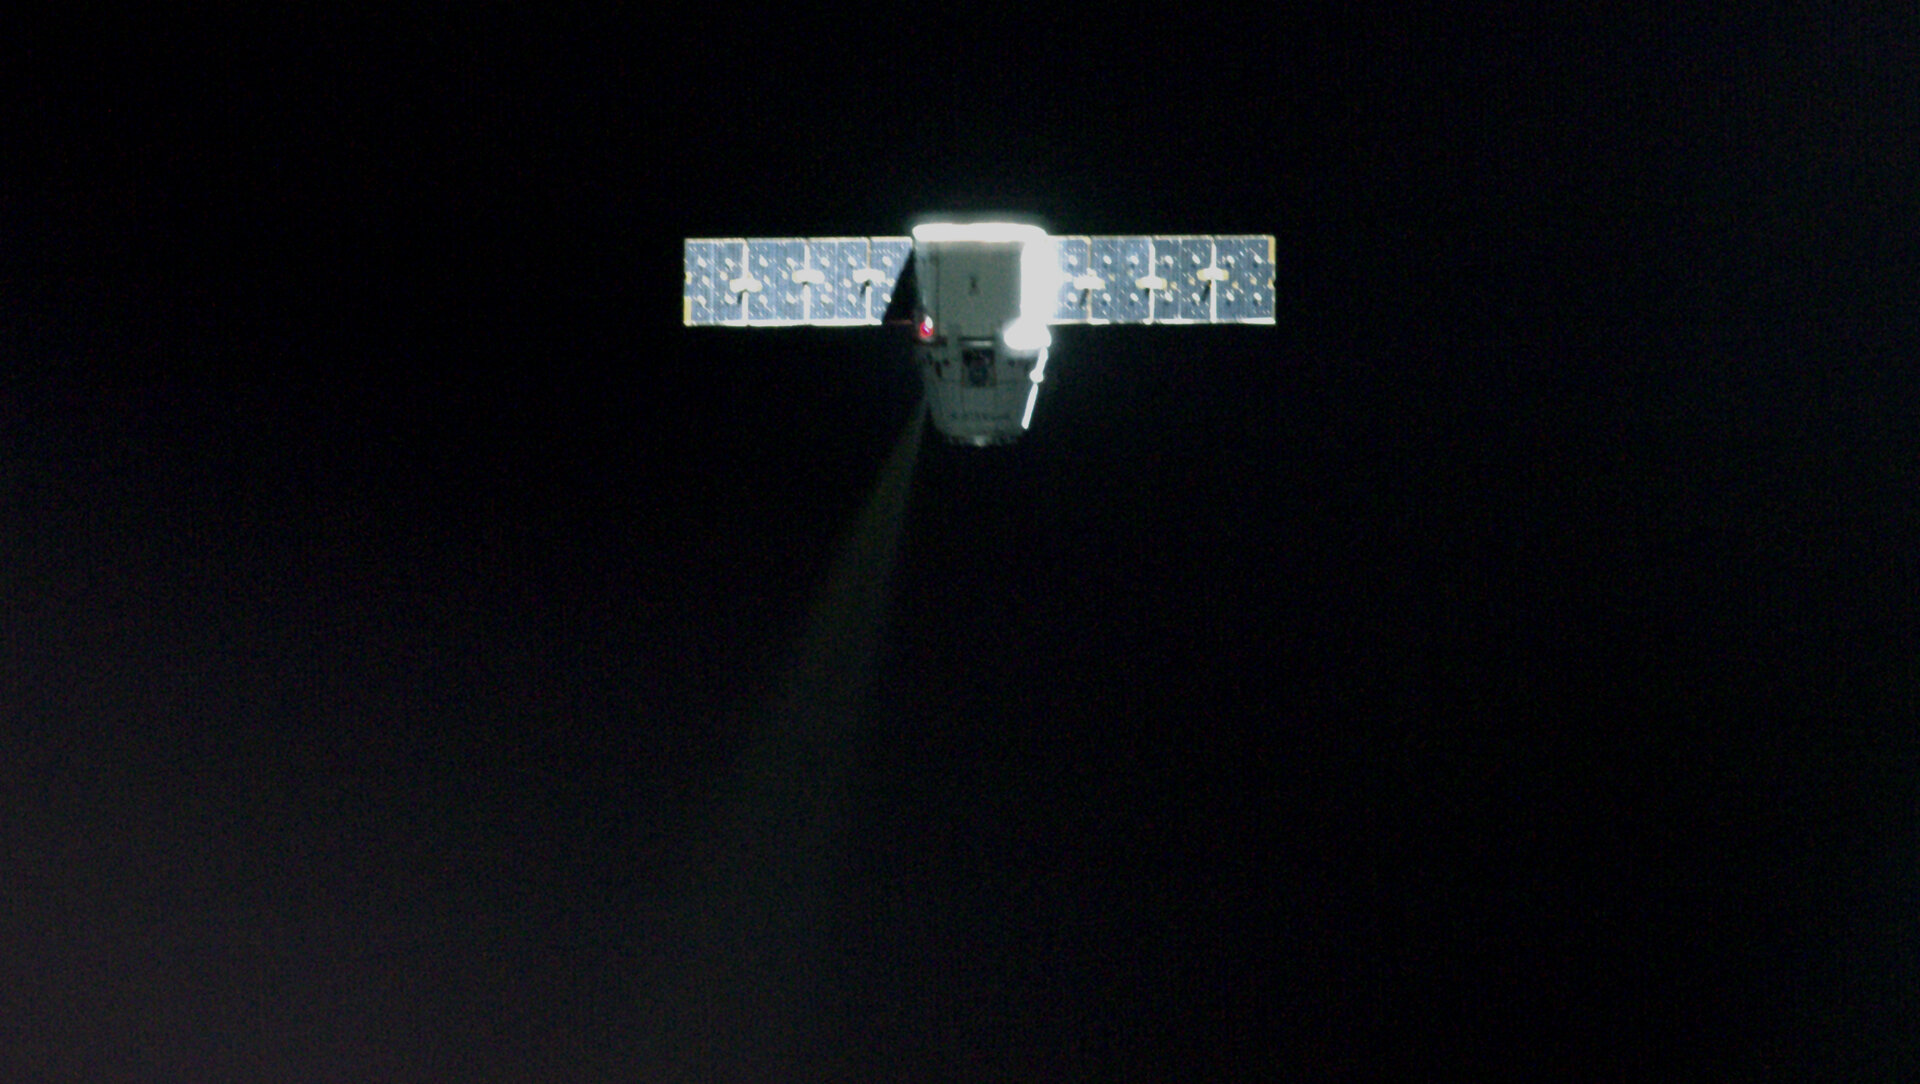 Dragon spacecraft approaching Space Station